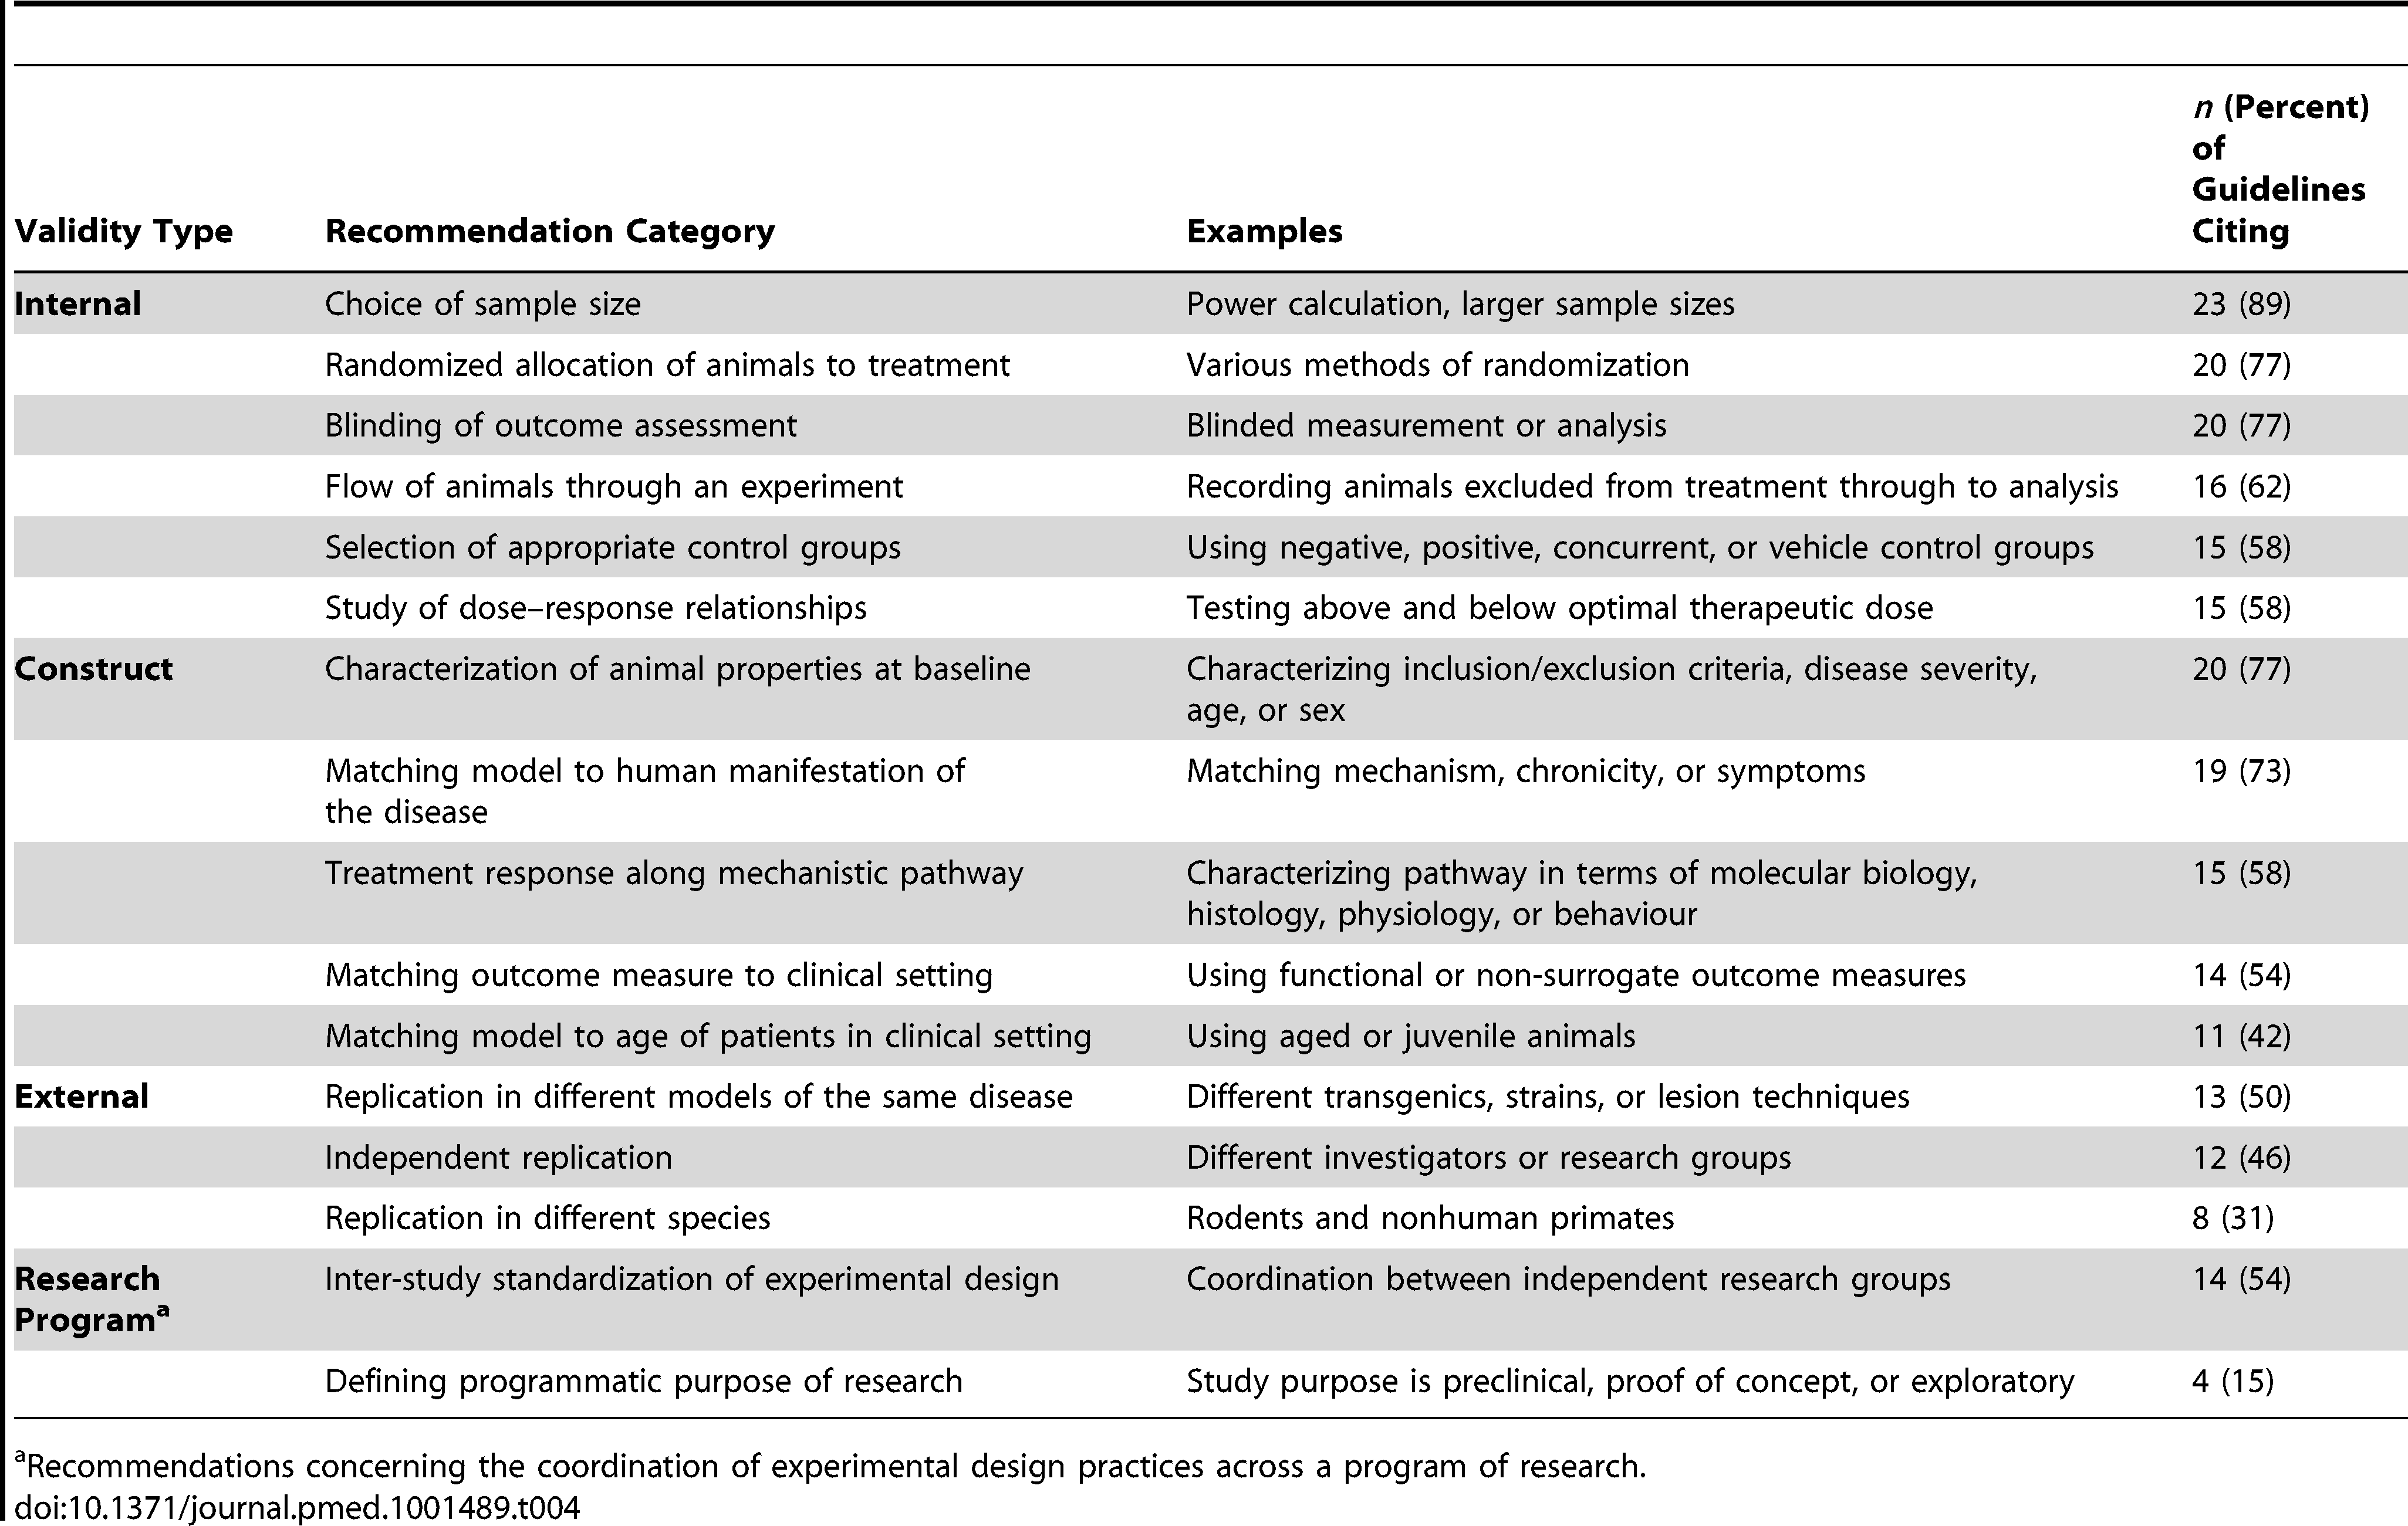 Most frequent recommendations appearing in preclinical research guidelines for in vivo animal experiments.